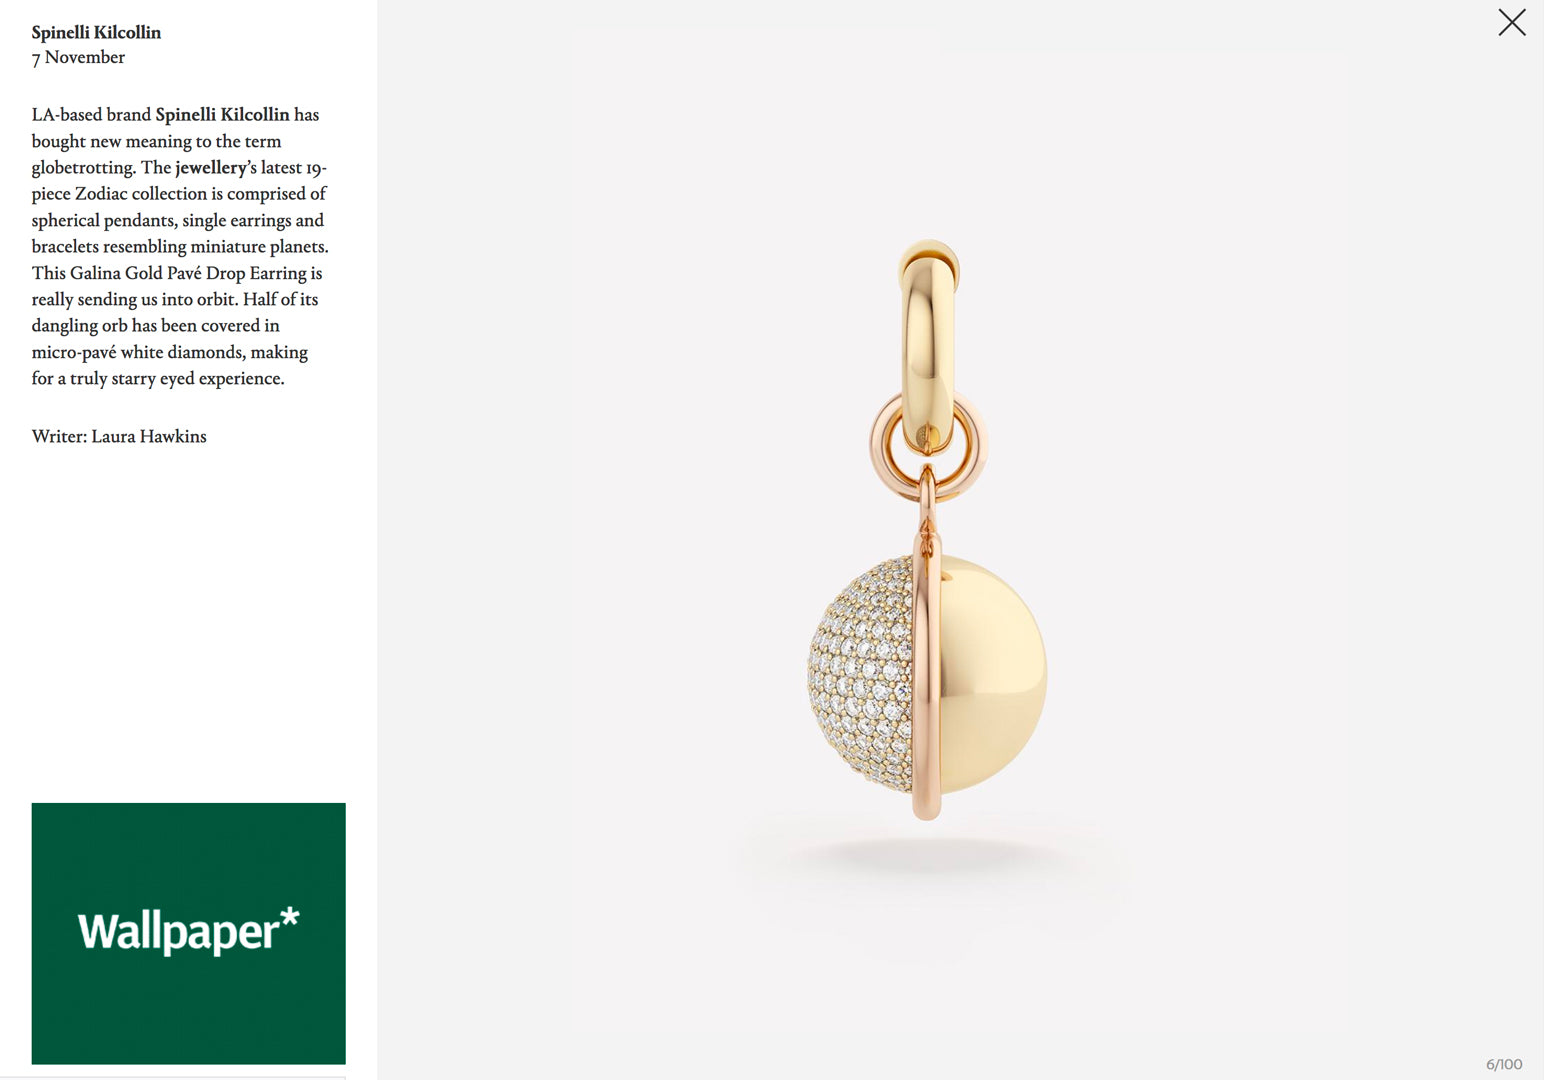 spinelli kilcollin wallpaper magazine zodiac collection galina gold pave drop earring luxury-jewelry